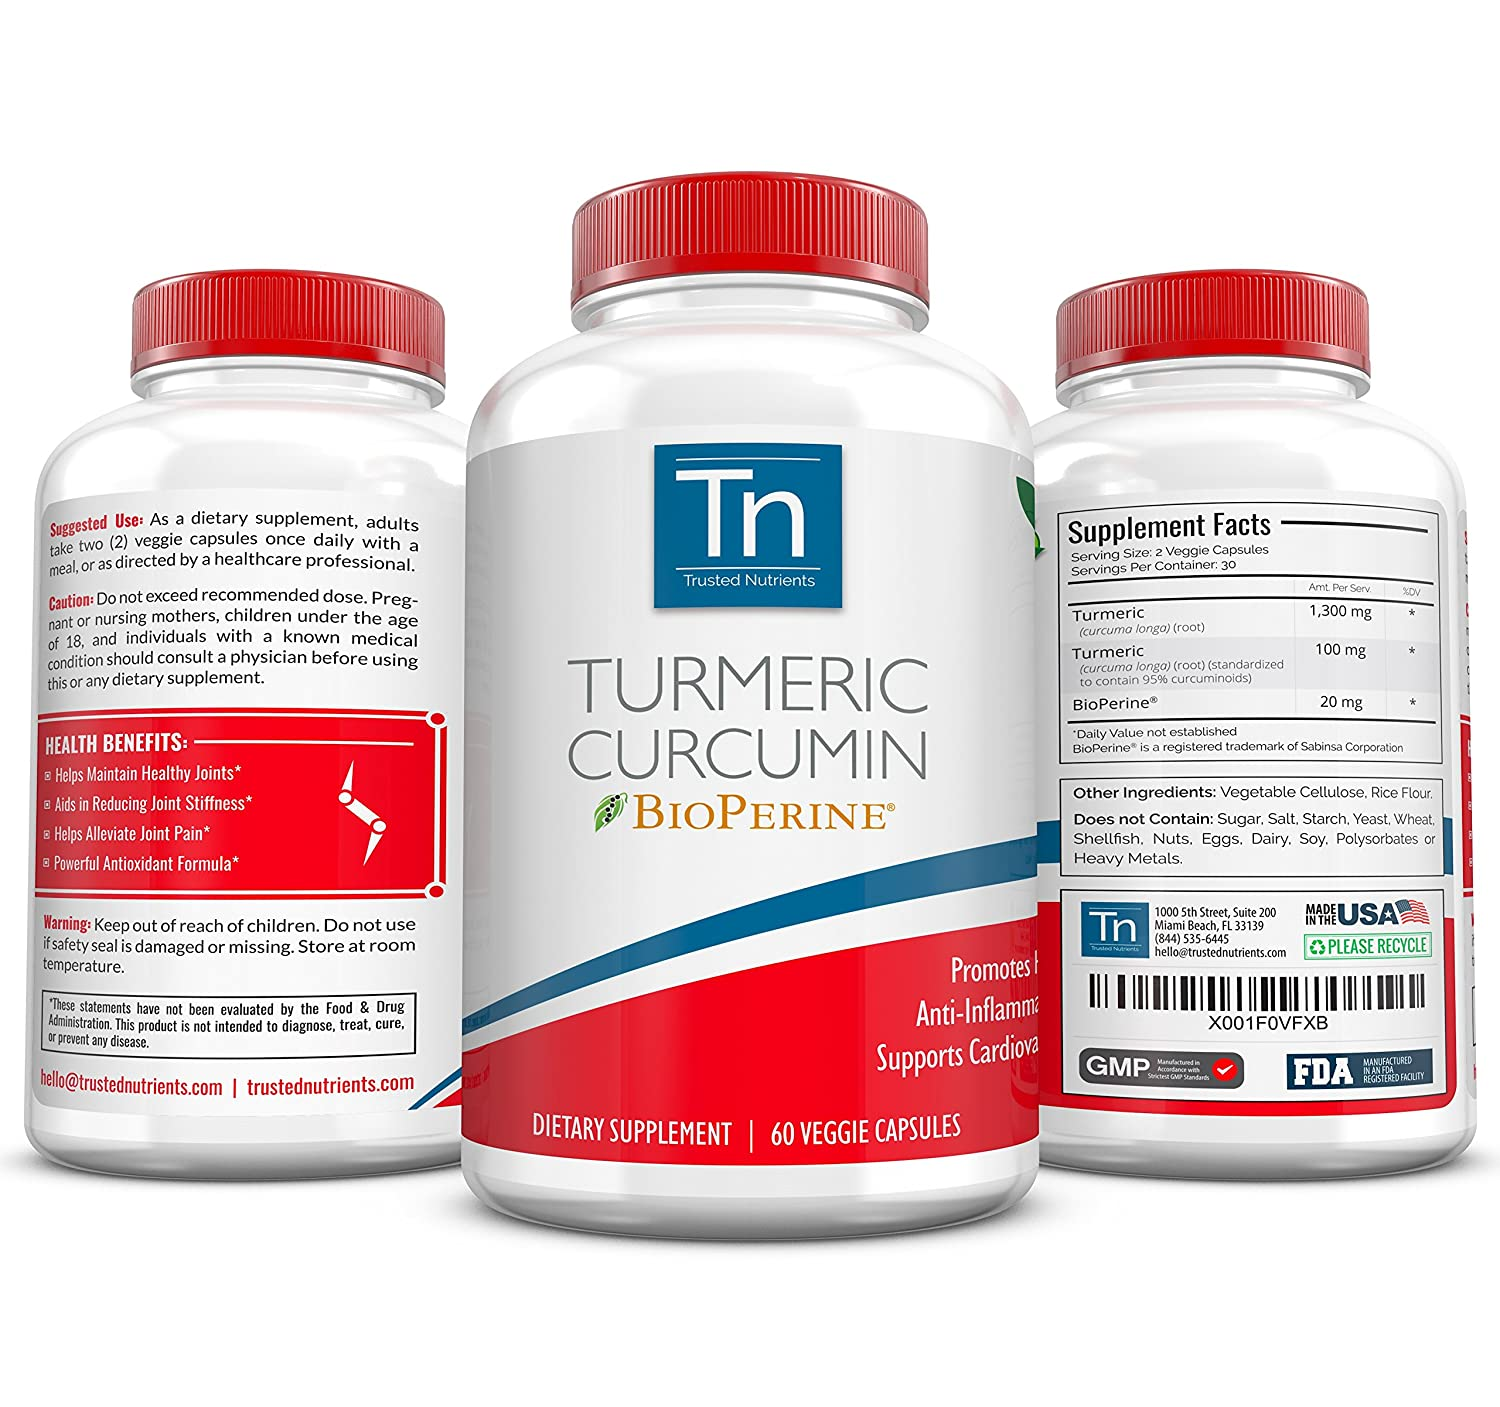 Trusted Nutrients Turmeric Curcumin Supplement with BioPerine High Absorption Curcumin Formula Concentrated 95 Curcuminoids Advanced Pain Relief and Joint Support 60 x 3 Vegetarian Capsules